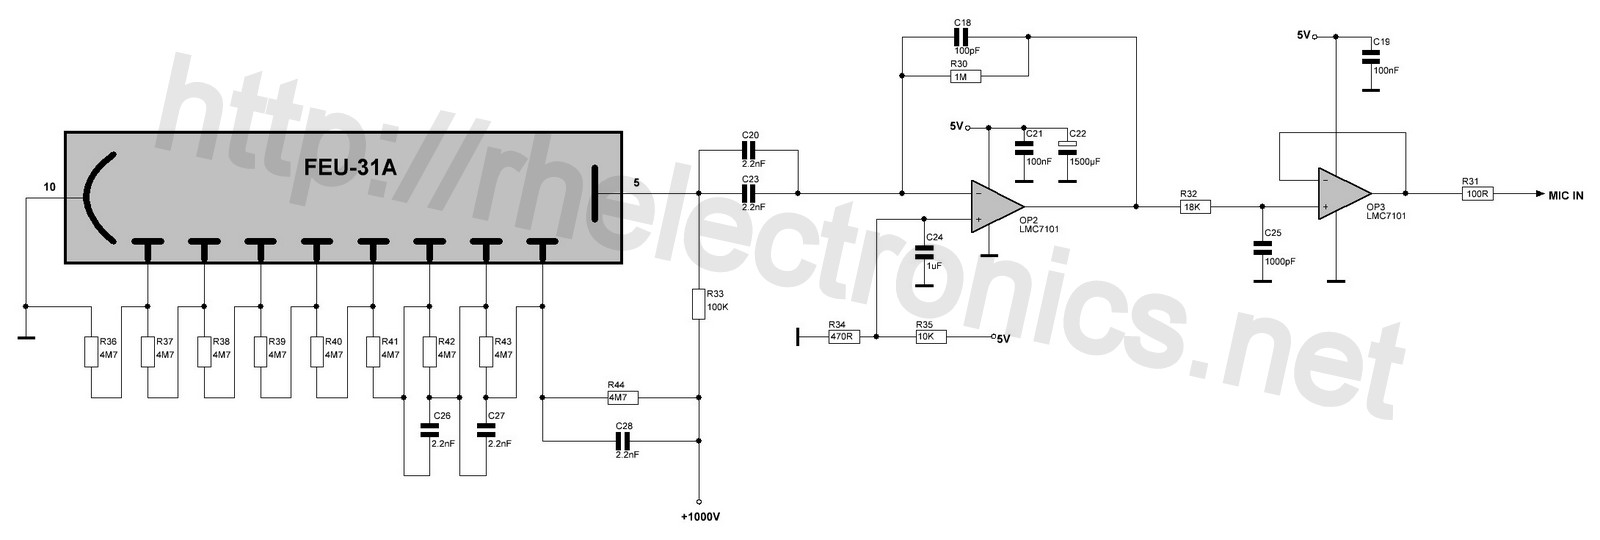 Sciencemadness Discussion Board Recommendations For Geiger Counter Charge Amplifier Circuit Feu 31 Divider Pulse Electrical